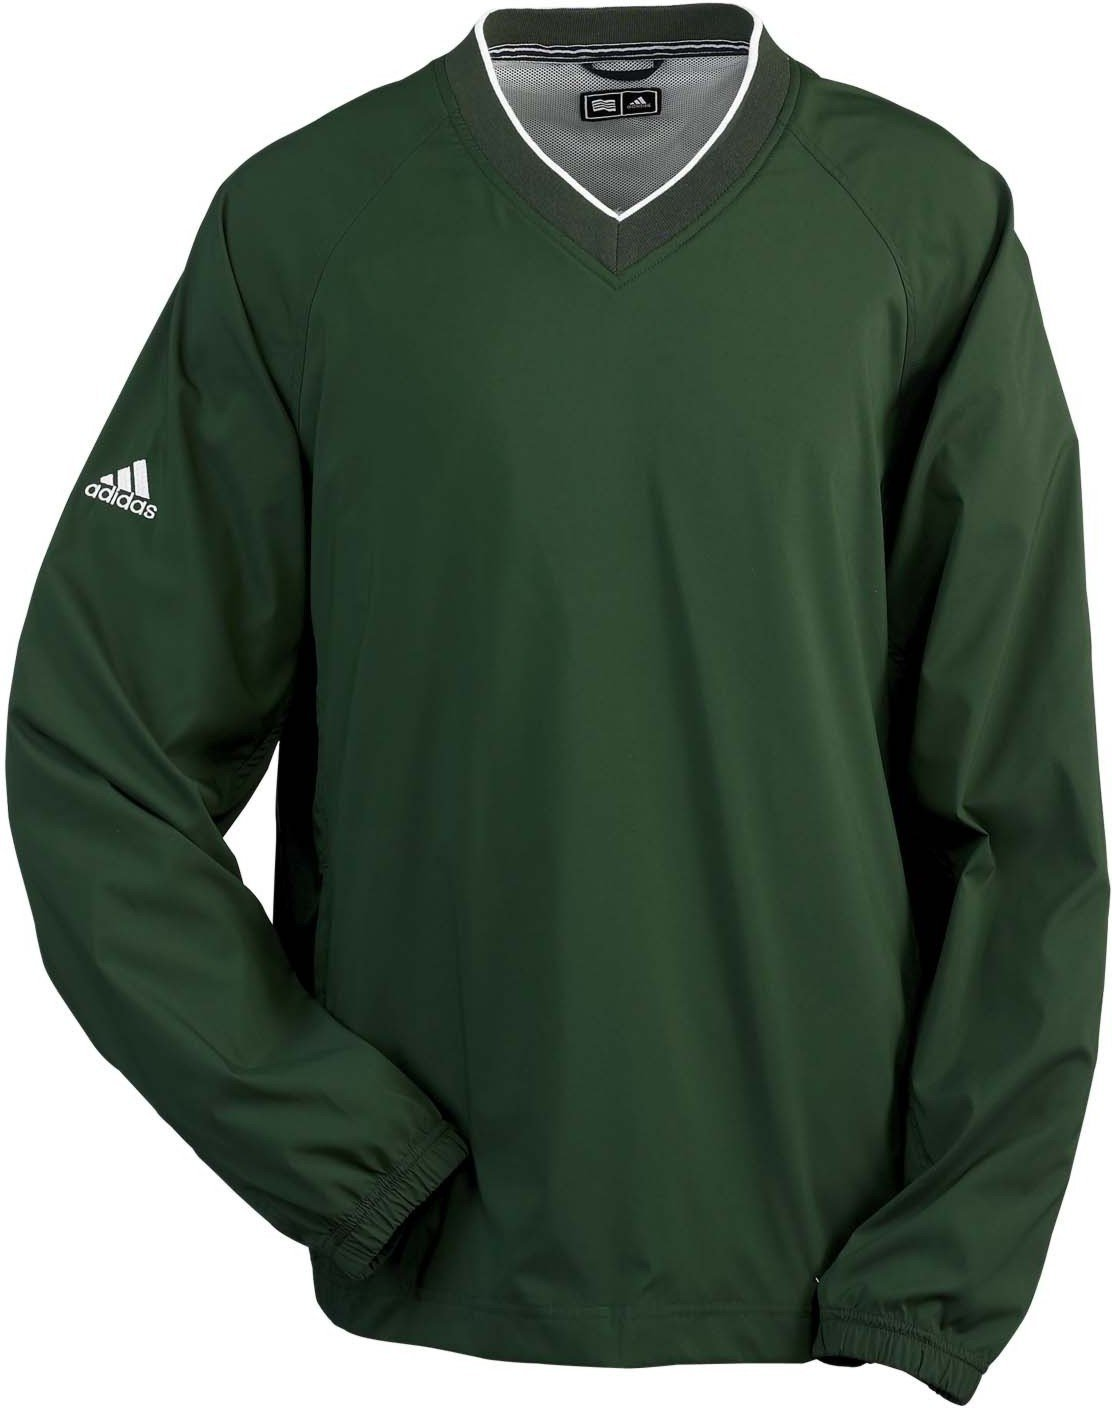 Adidas Mens Golf Windshirts